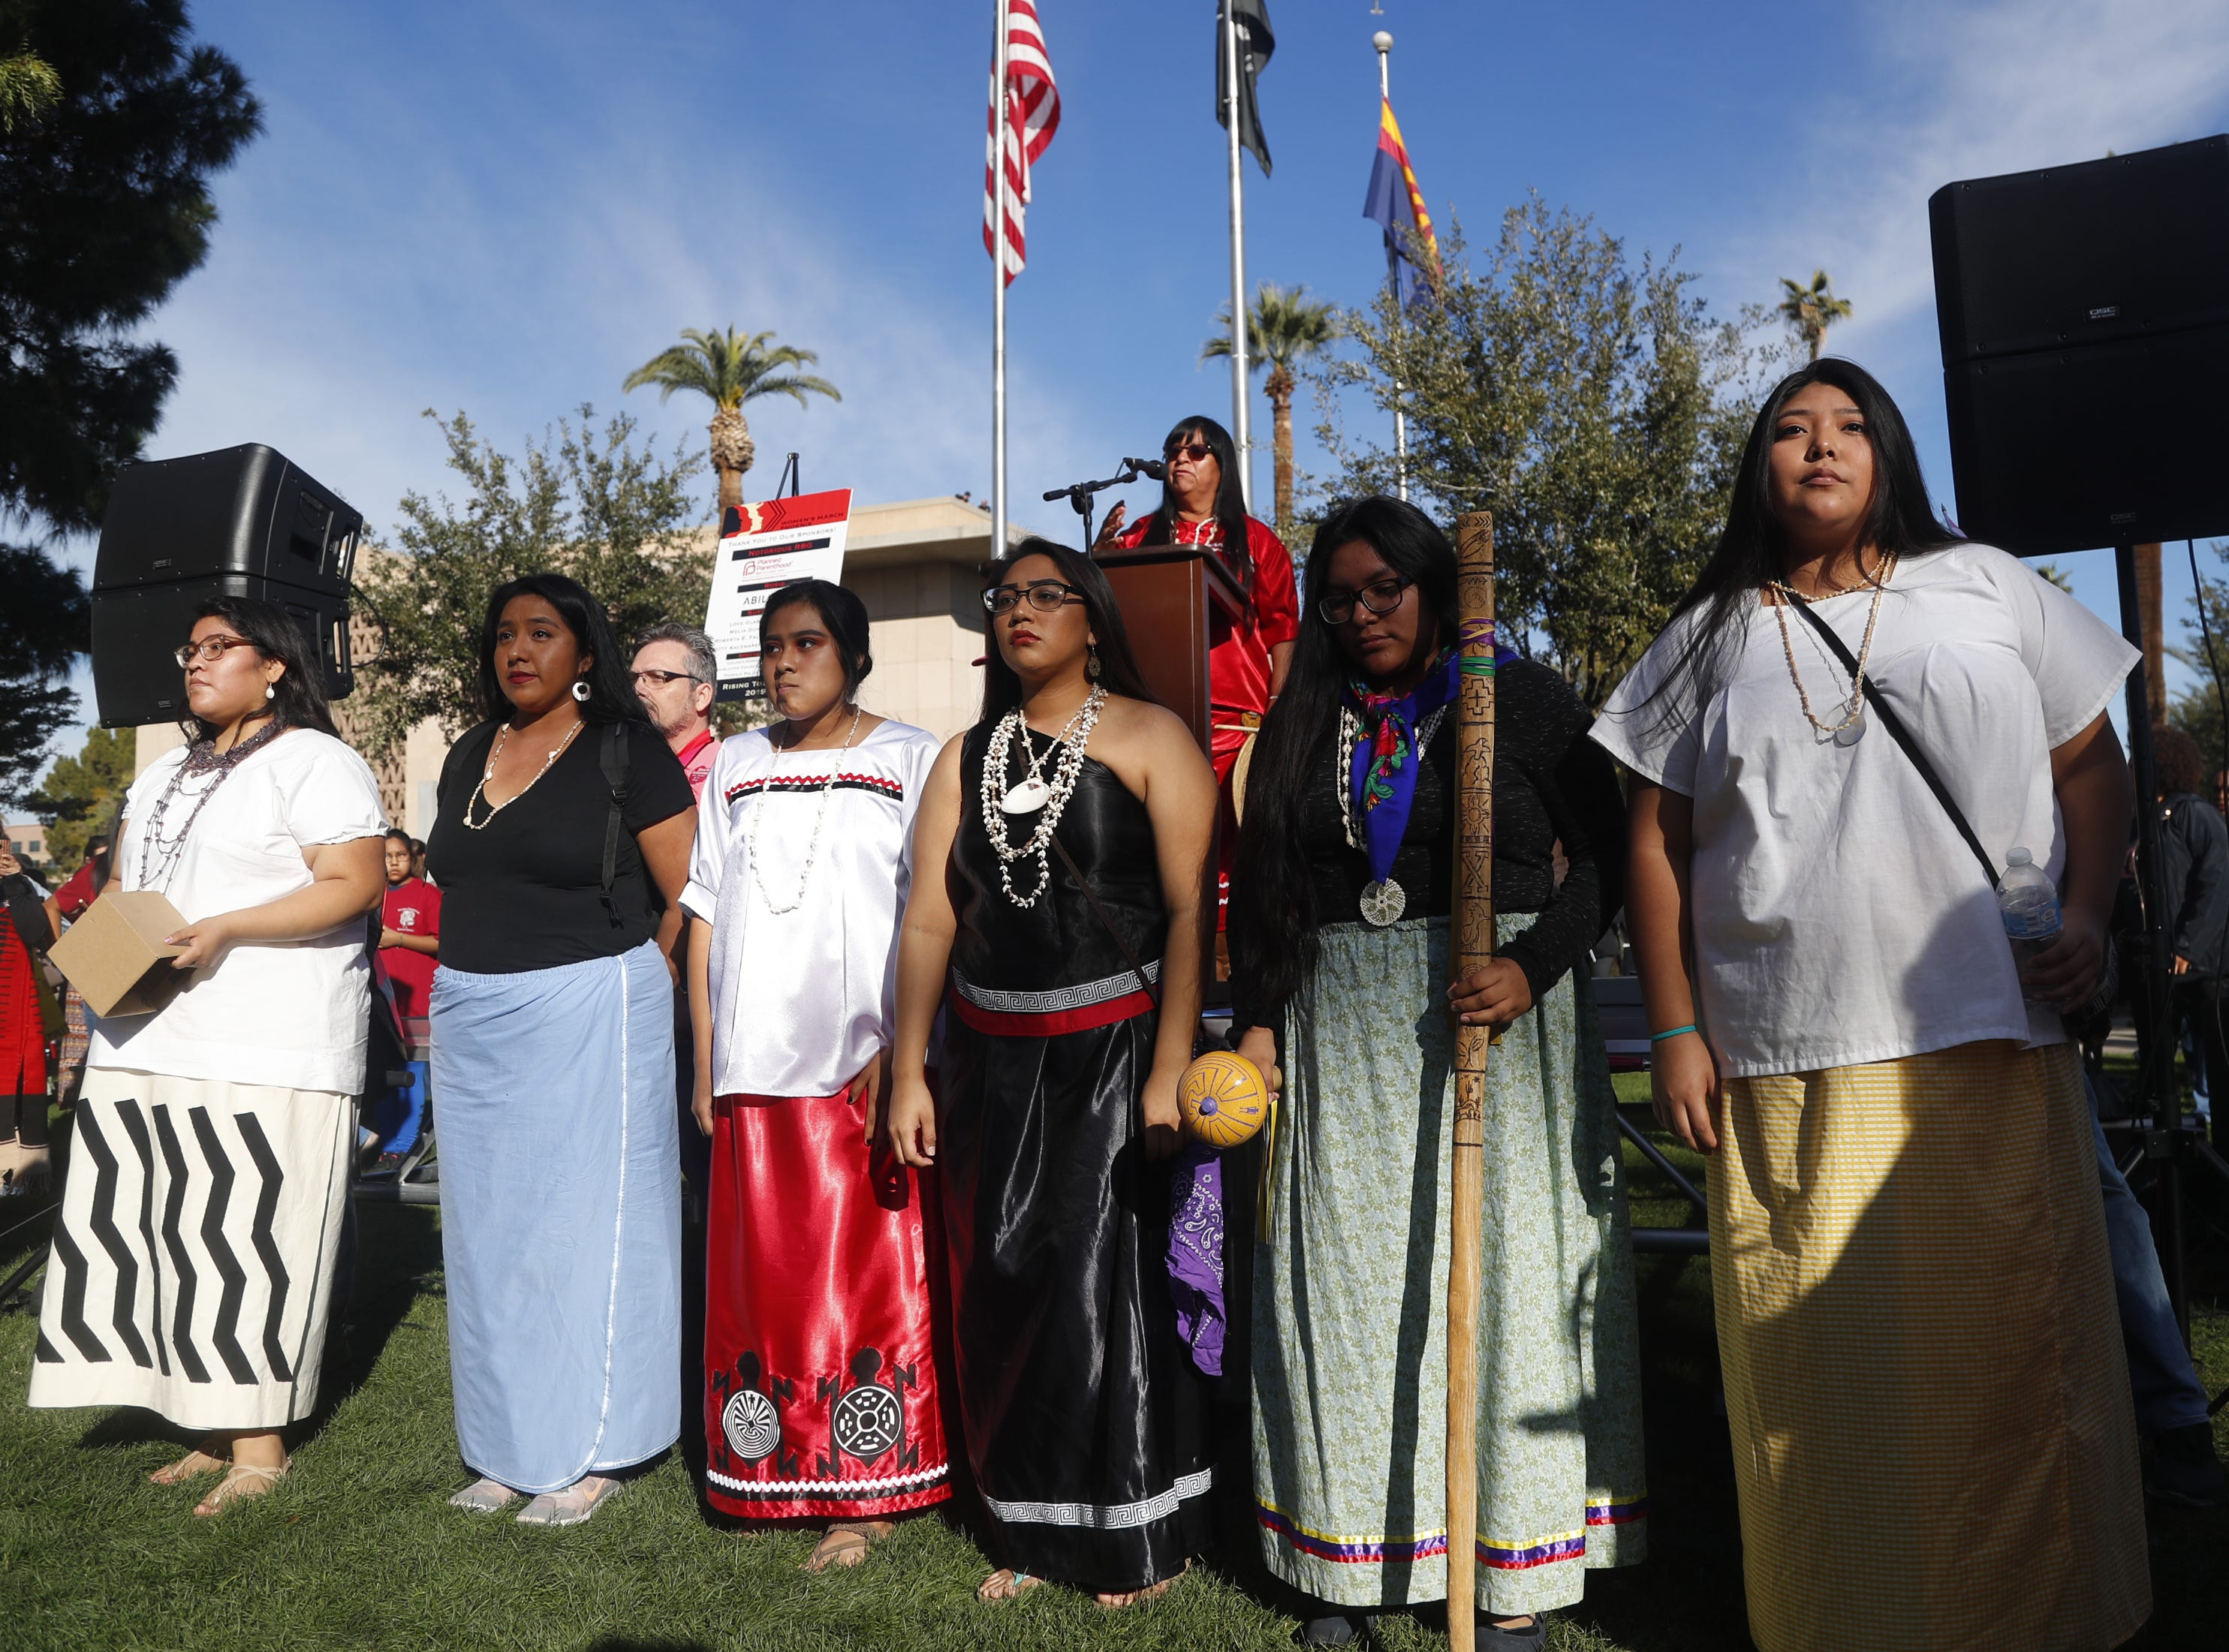 Indigenous women lead off the event with a song lead by Pamela Thompson during the Women's March outside the state capital building in Phoenix, Jan. 19, 2019.